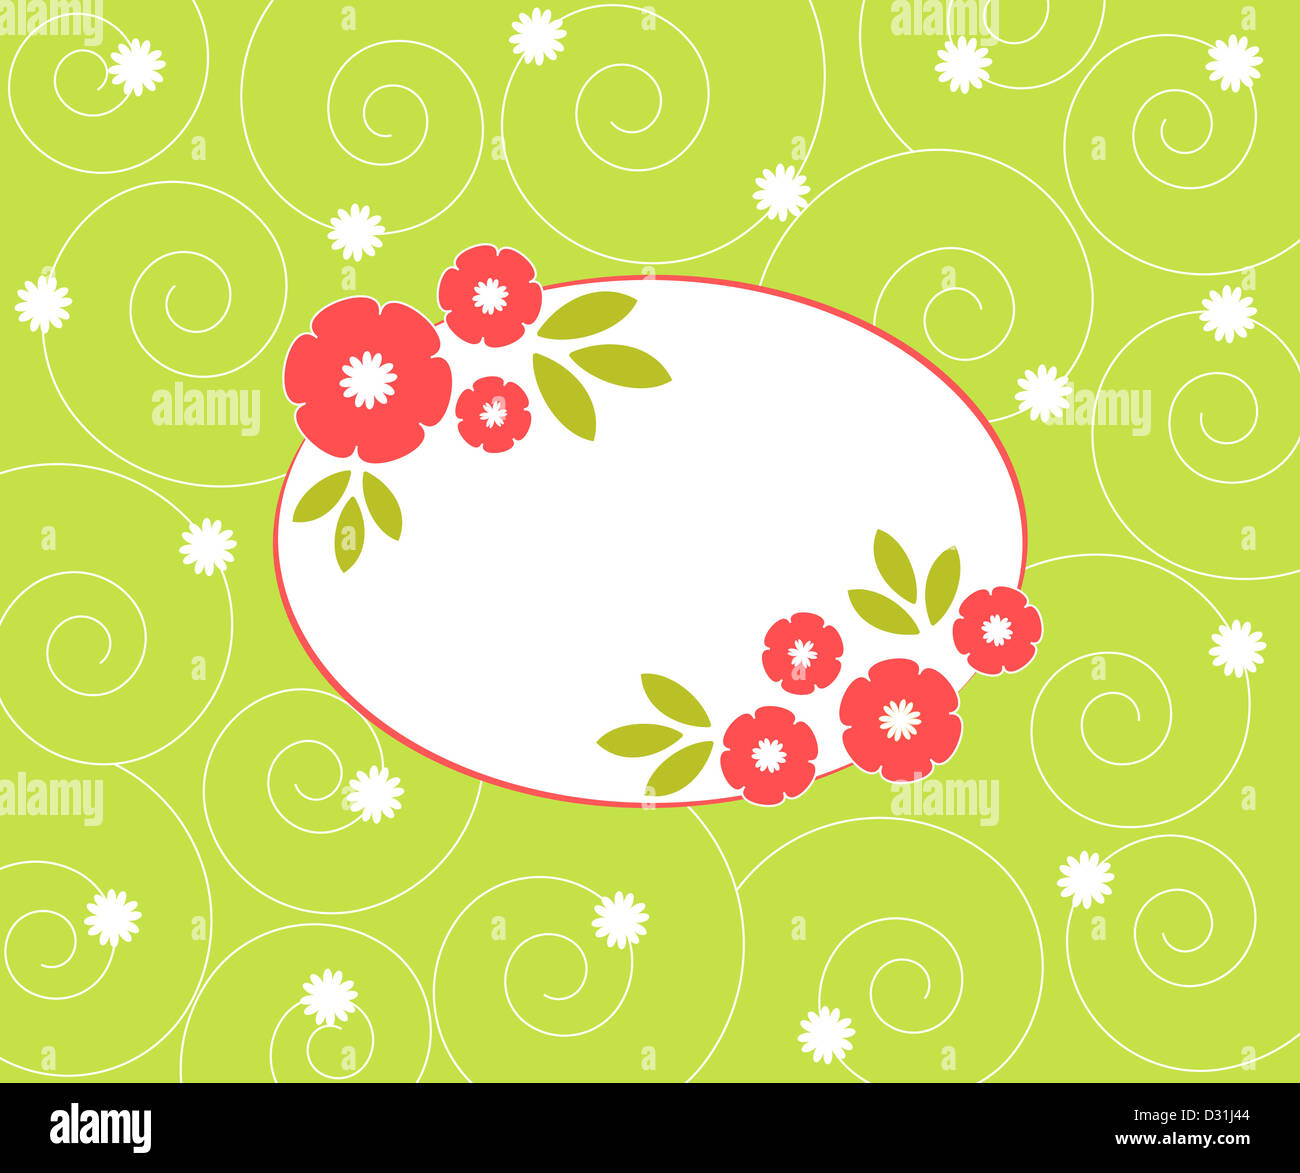 Colorful floral frame on spiral pattern Stock Photo